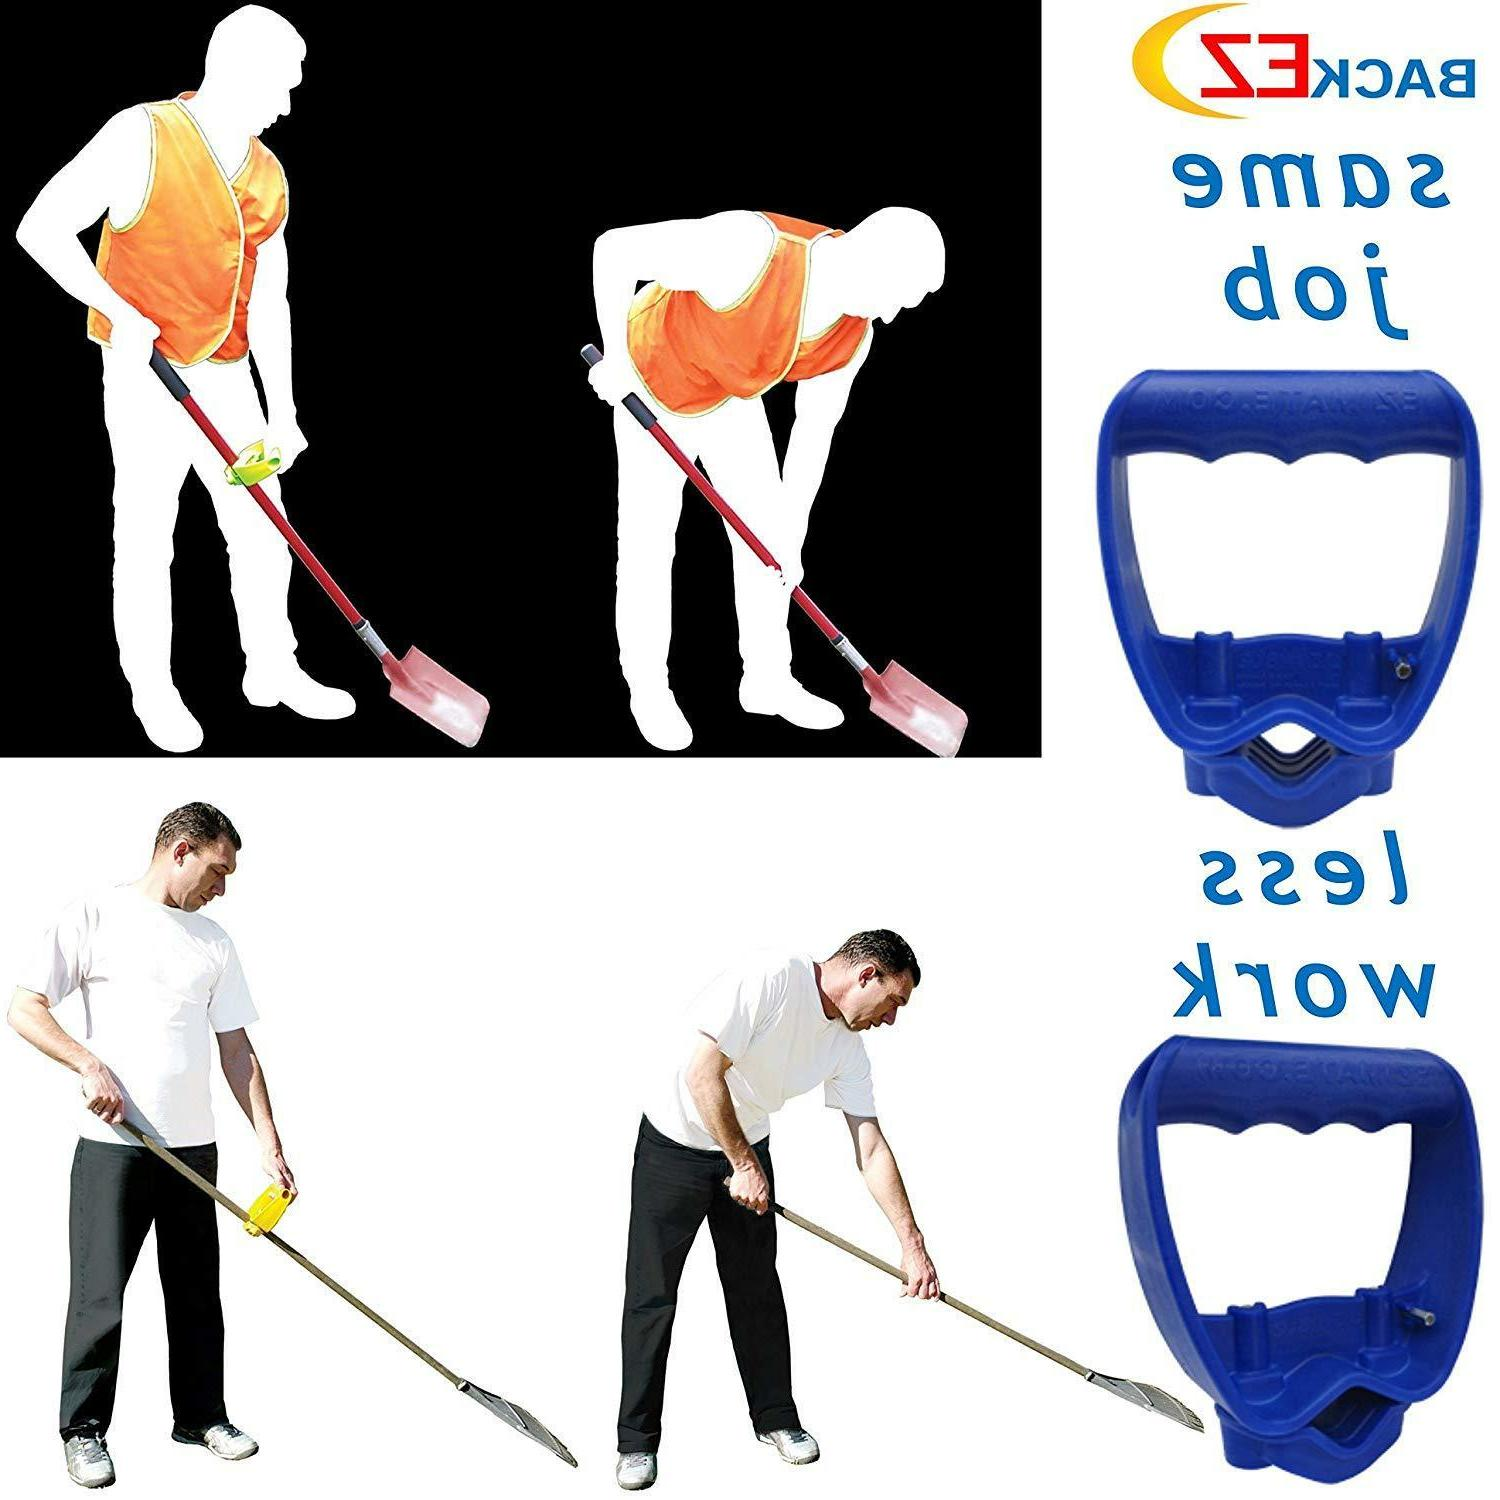 Back-Saving Tool Ergonomic Shovel Handle Attachment